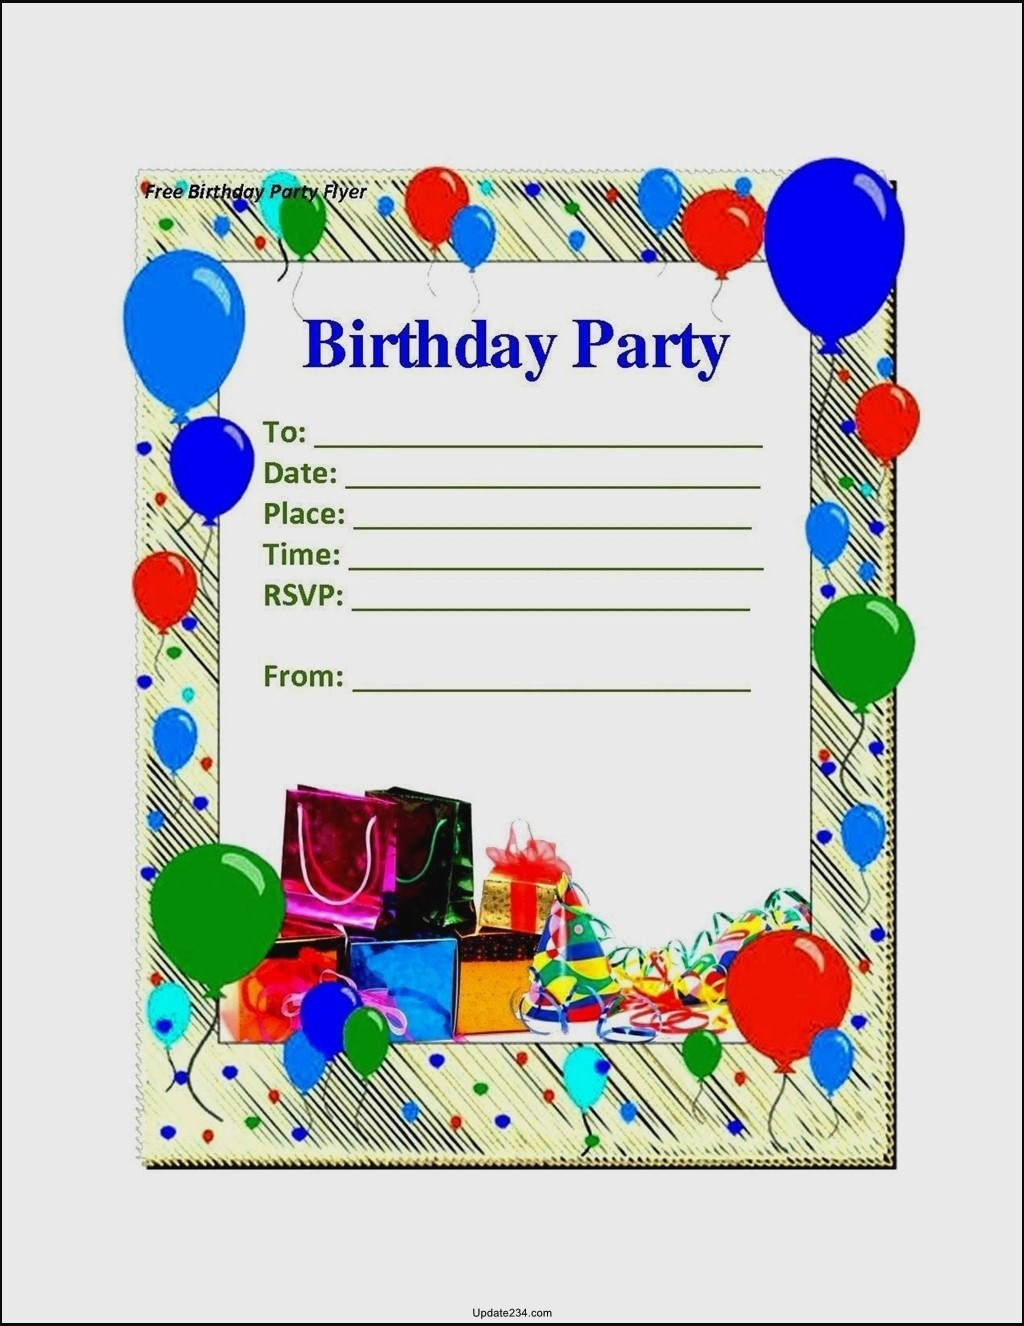 Birthday Card Template for Word Best Of Blank Birthday Card Template Word Template Update234